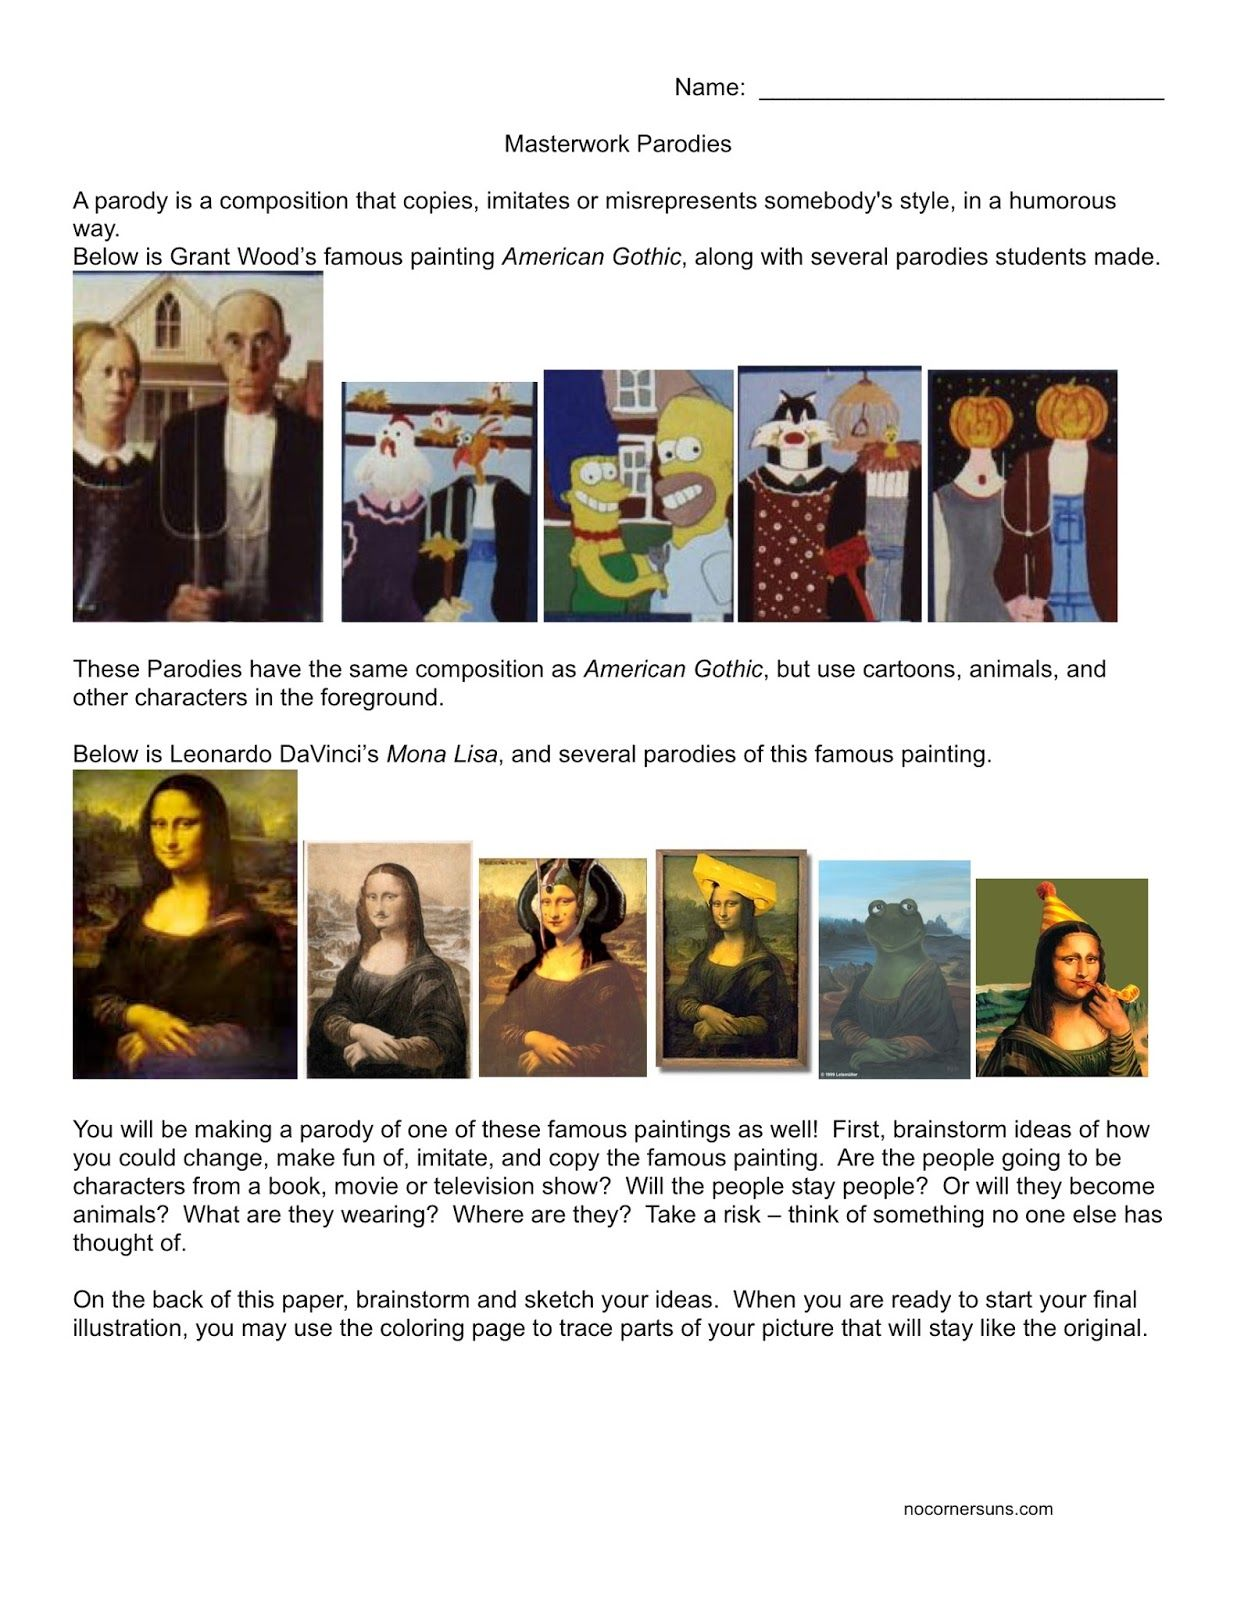 American Gothic Mona Lisa Parody Lesson And Handout